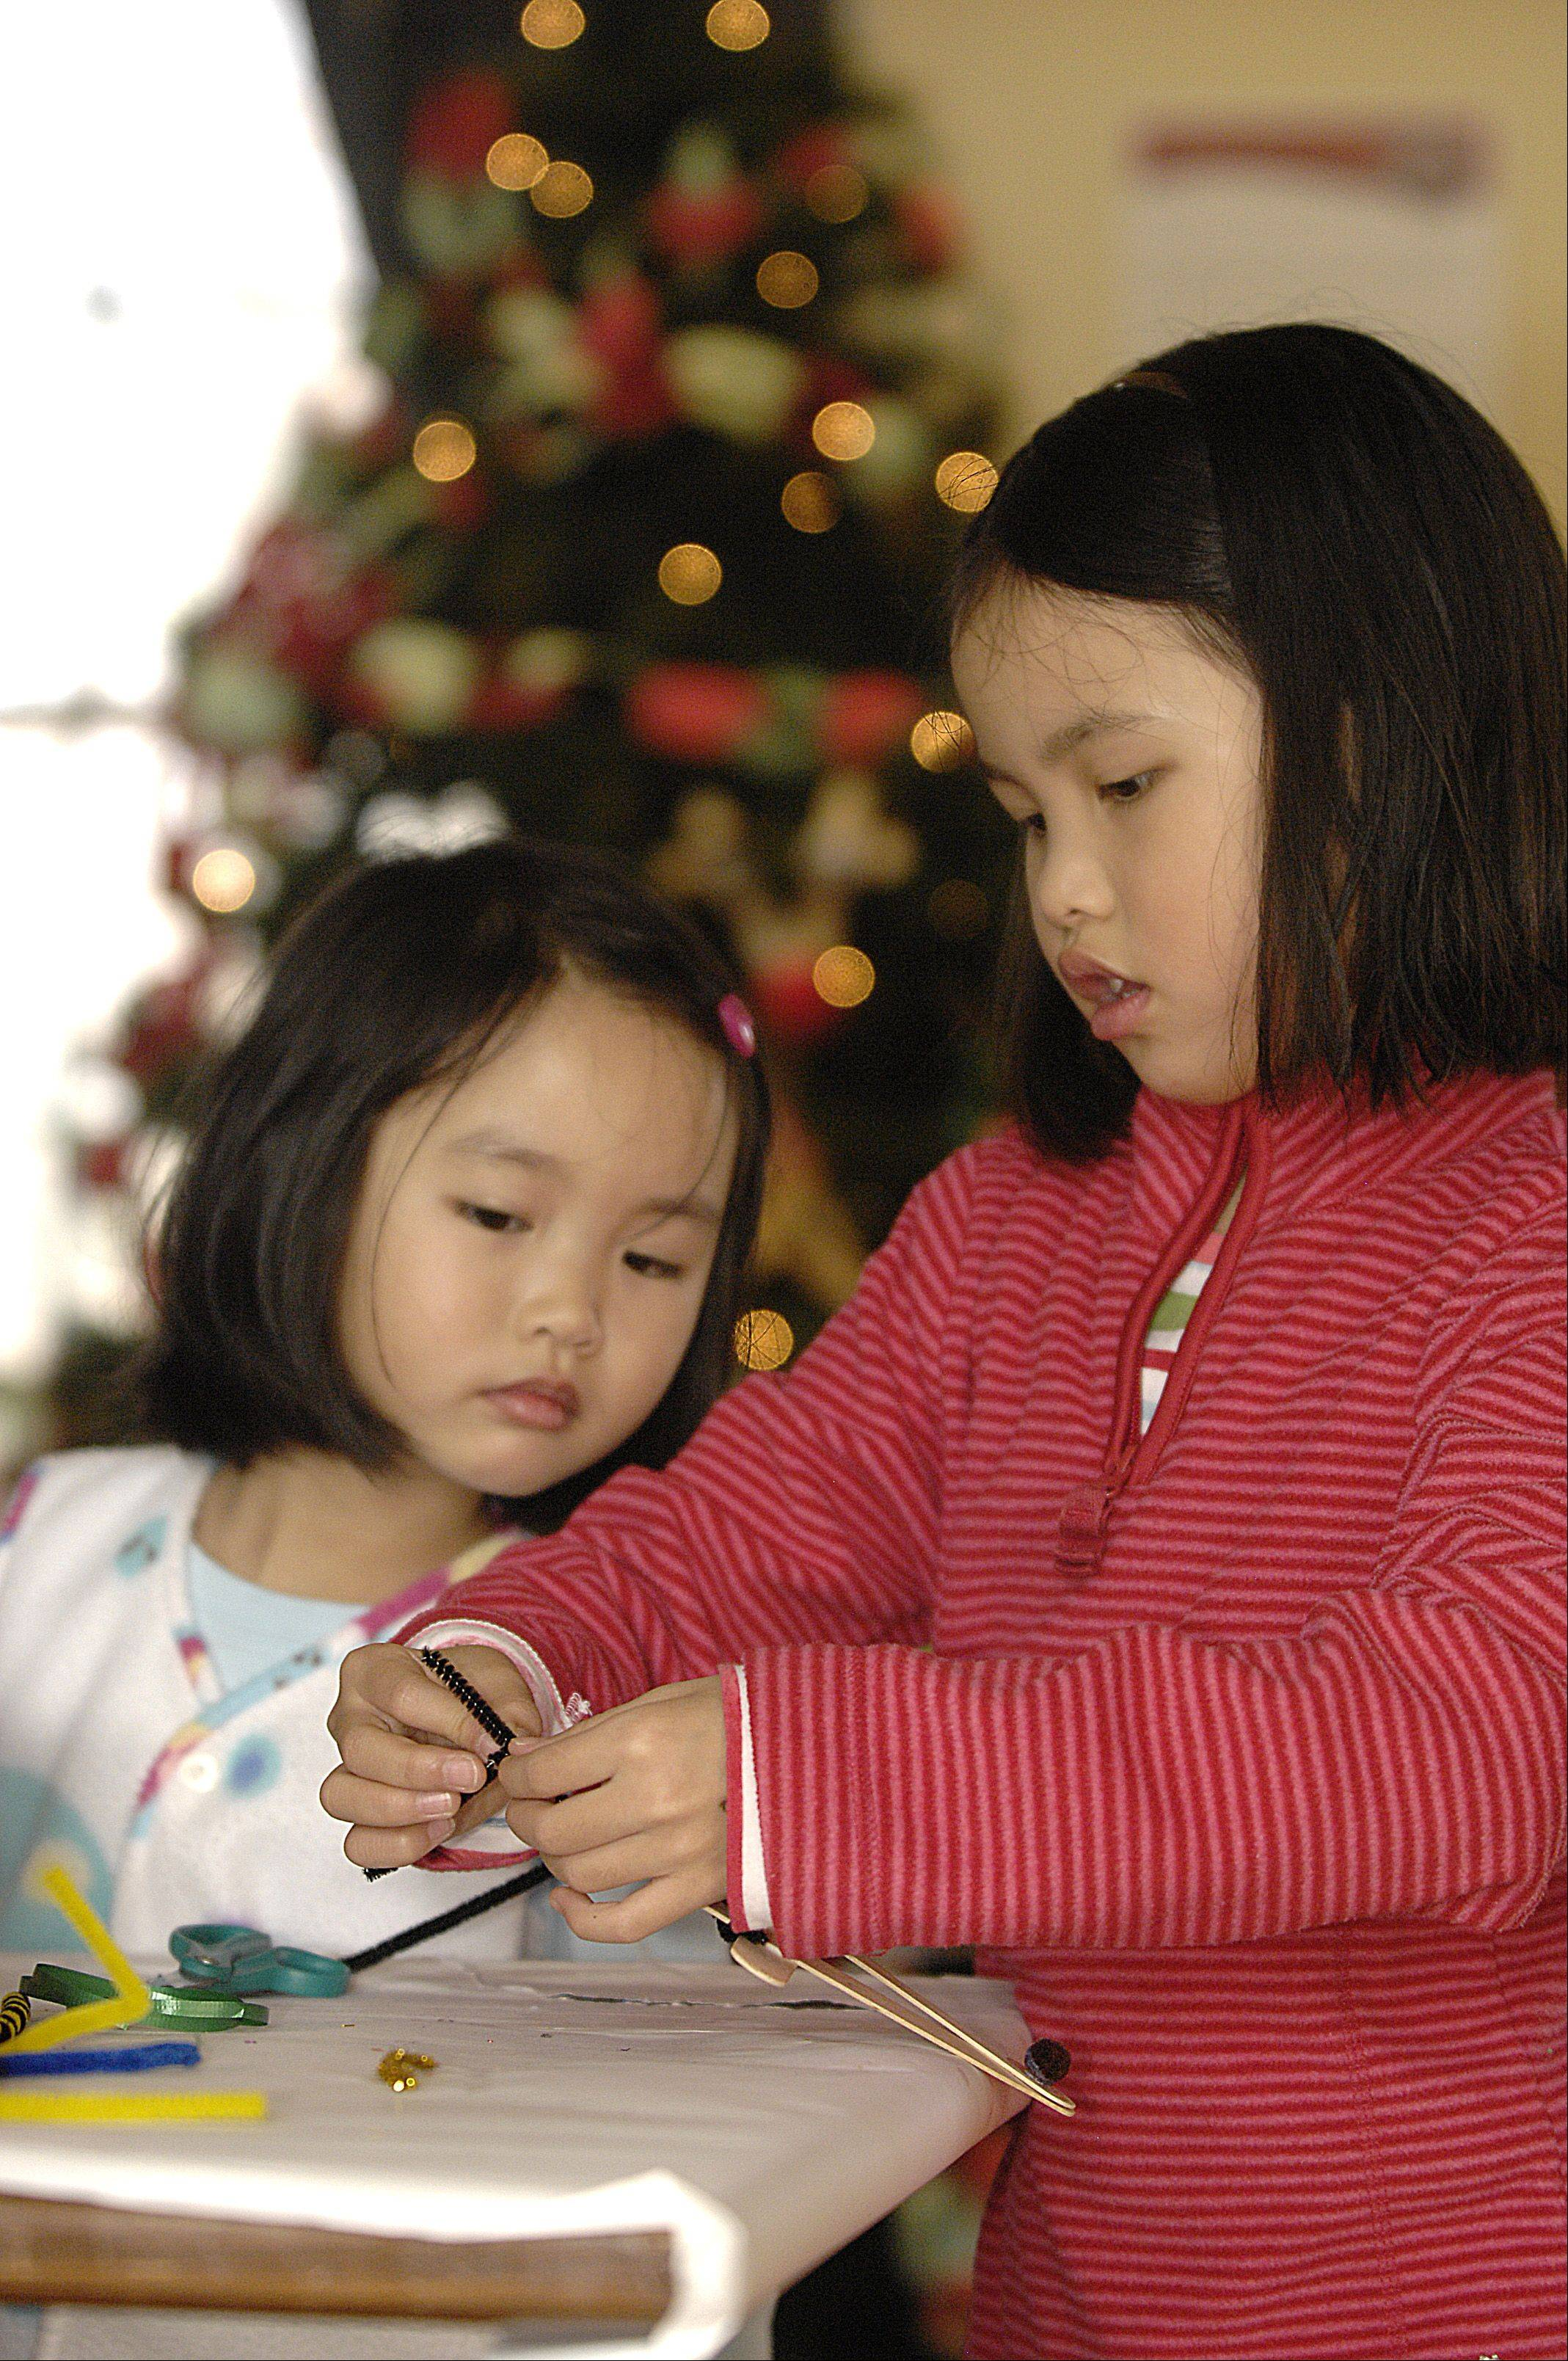 Sophie Mui, 4, and her sister Adelyn, 7, of Lisle, work on a reindeer ornament Sunday during Lisle's Once Upon a Christmas celebration at Lisle Station Park.